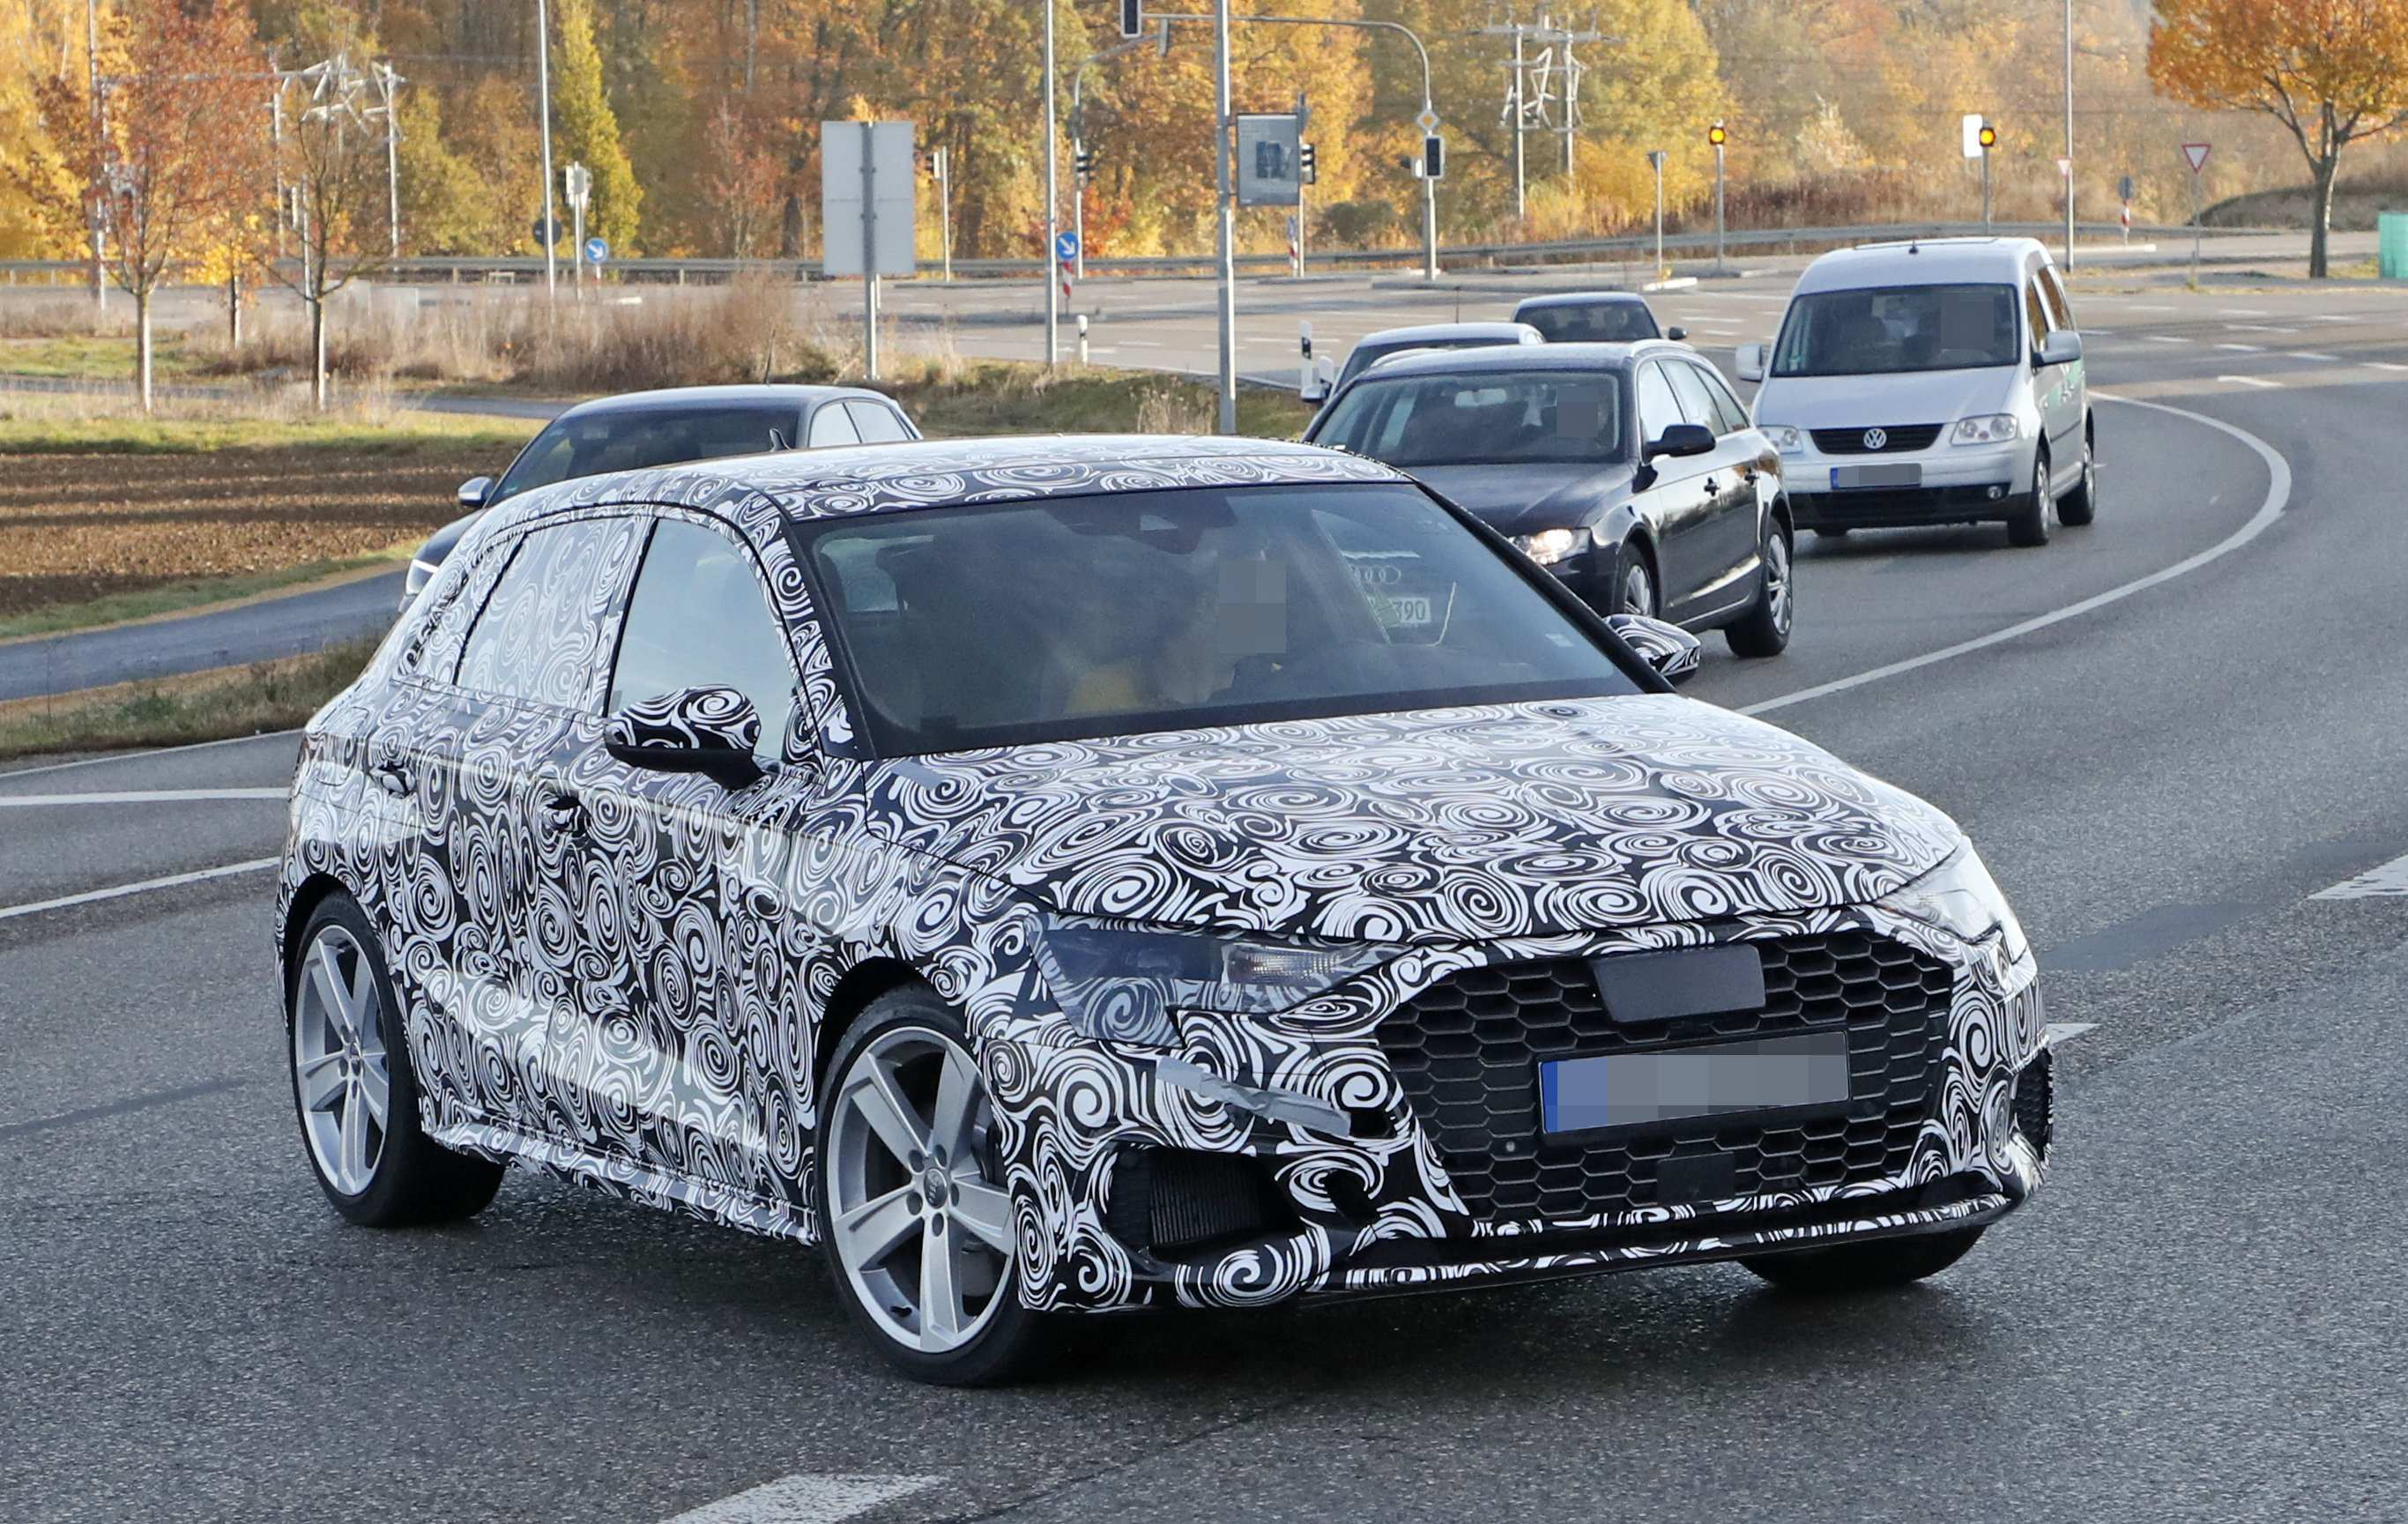 79 Best Review Audi A3 Hatchback 2020 Pictures by Audi A3 Hatchback 2020